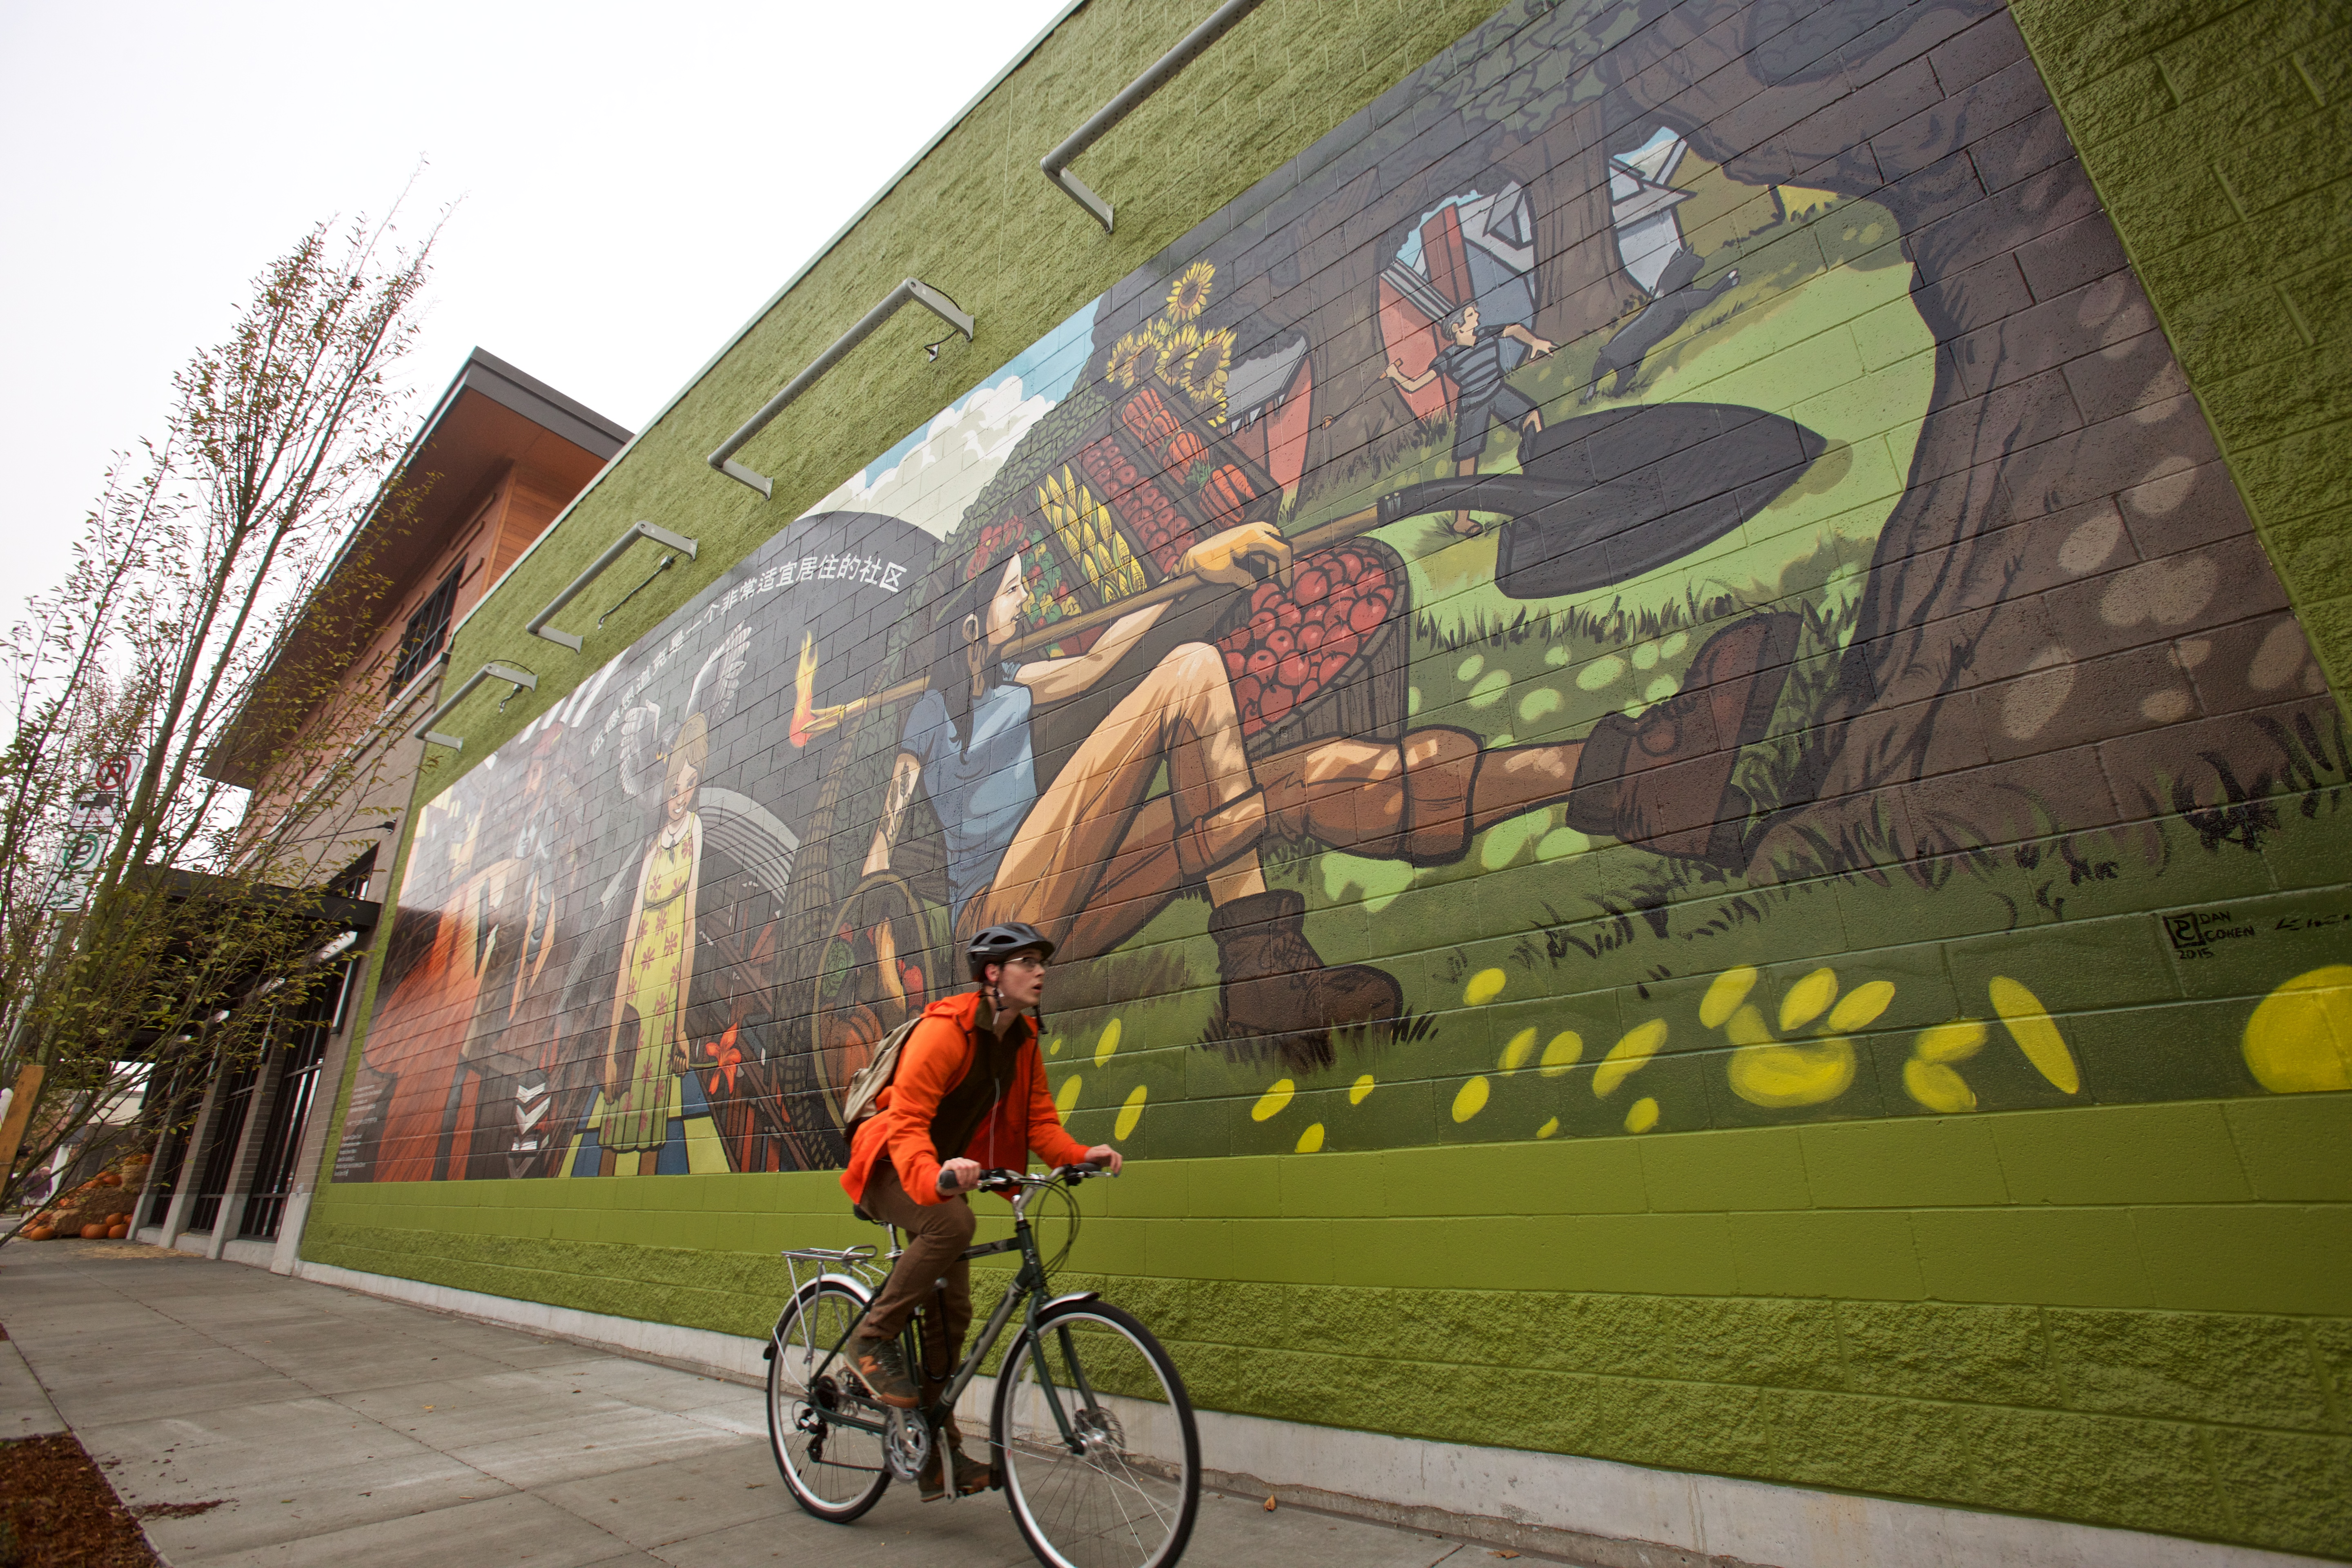 an individual biking past a new seasons building with a large colorful mural